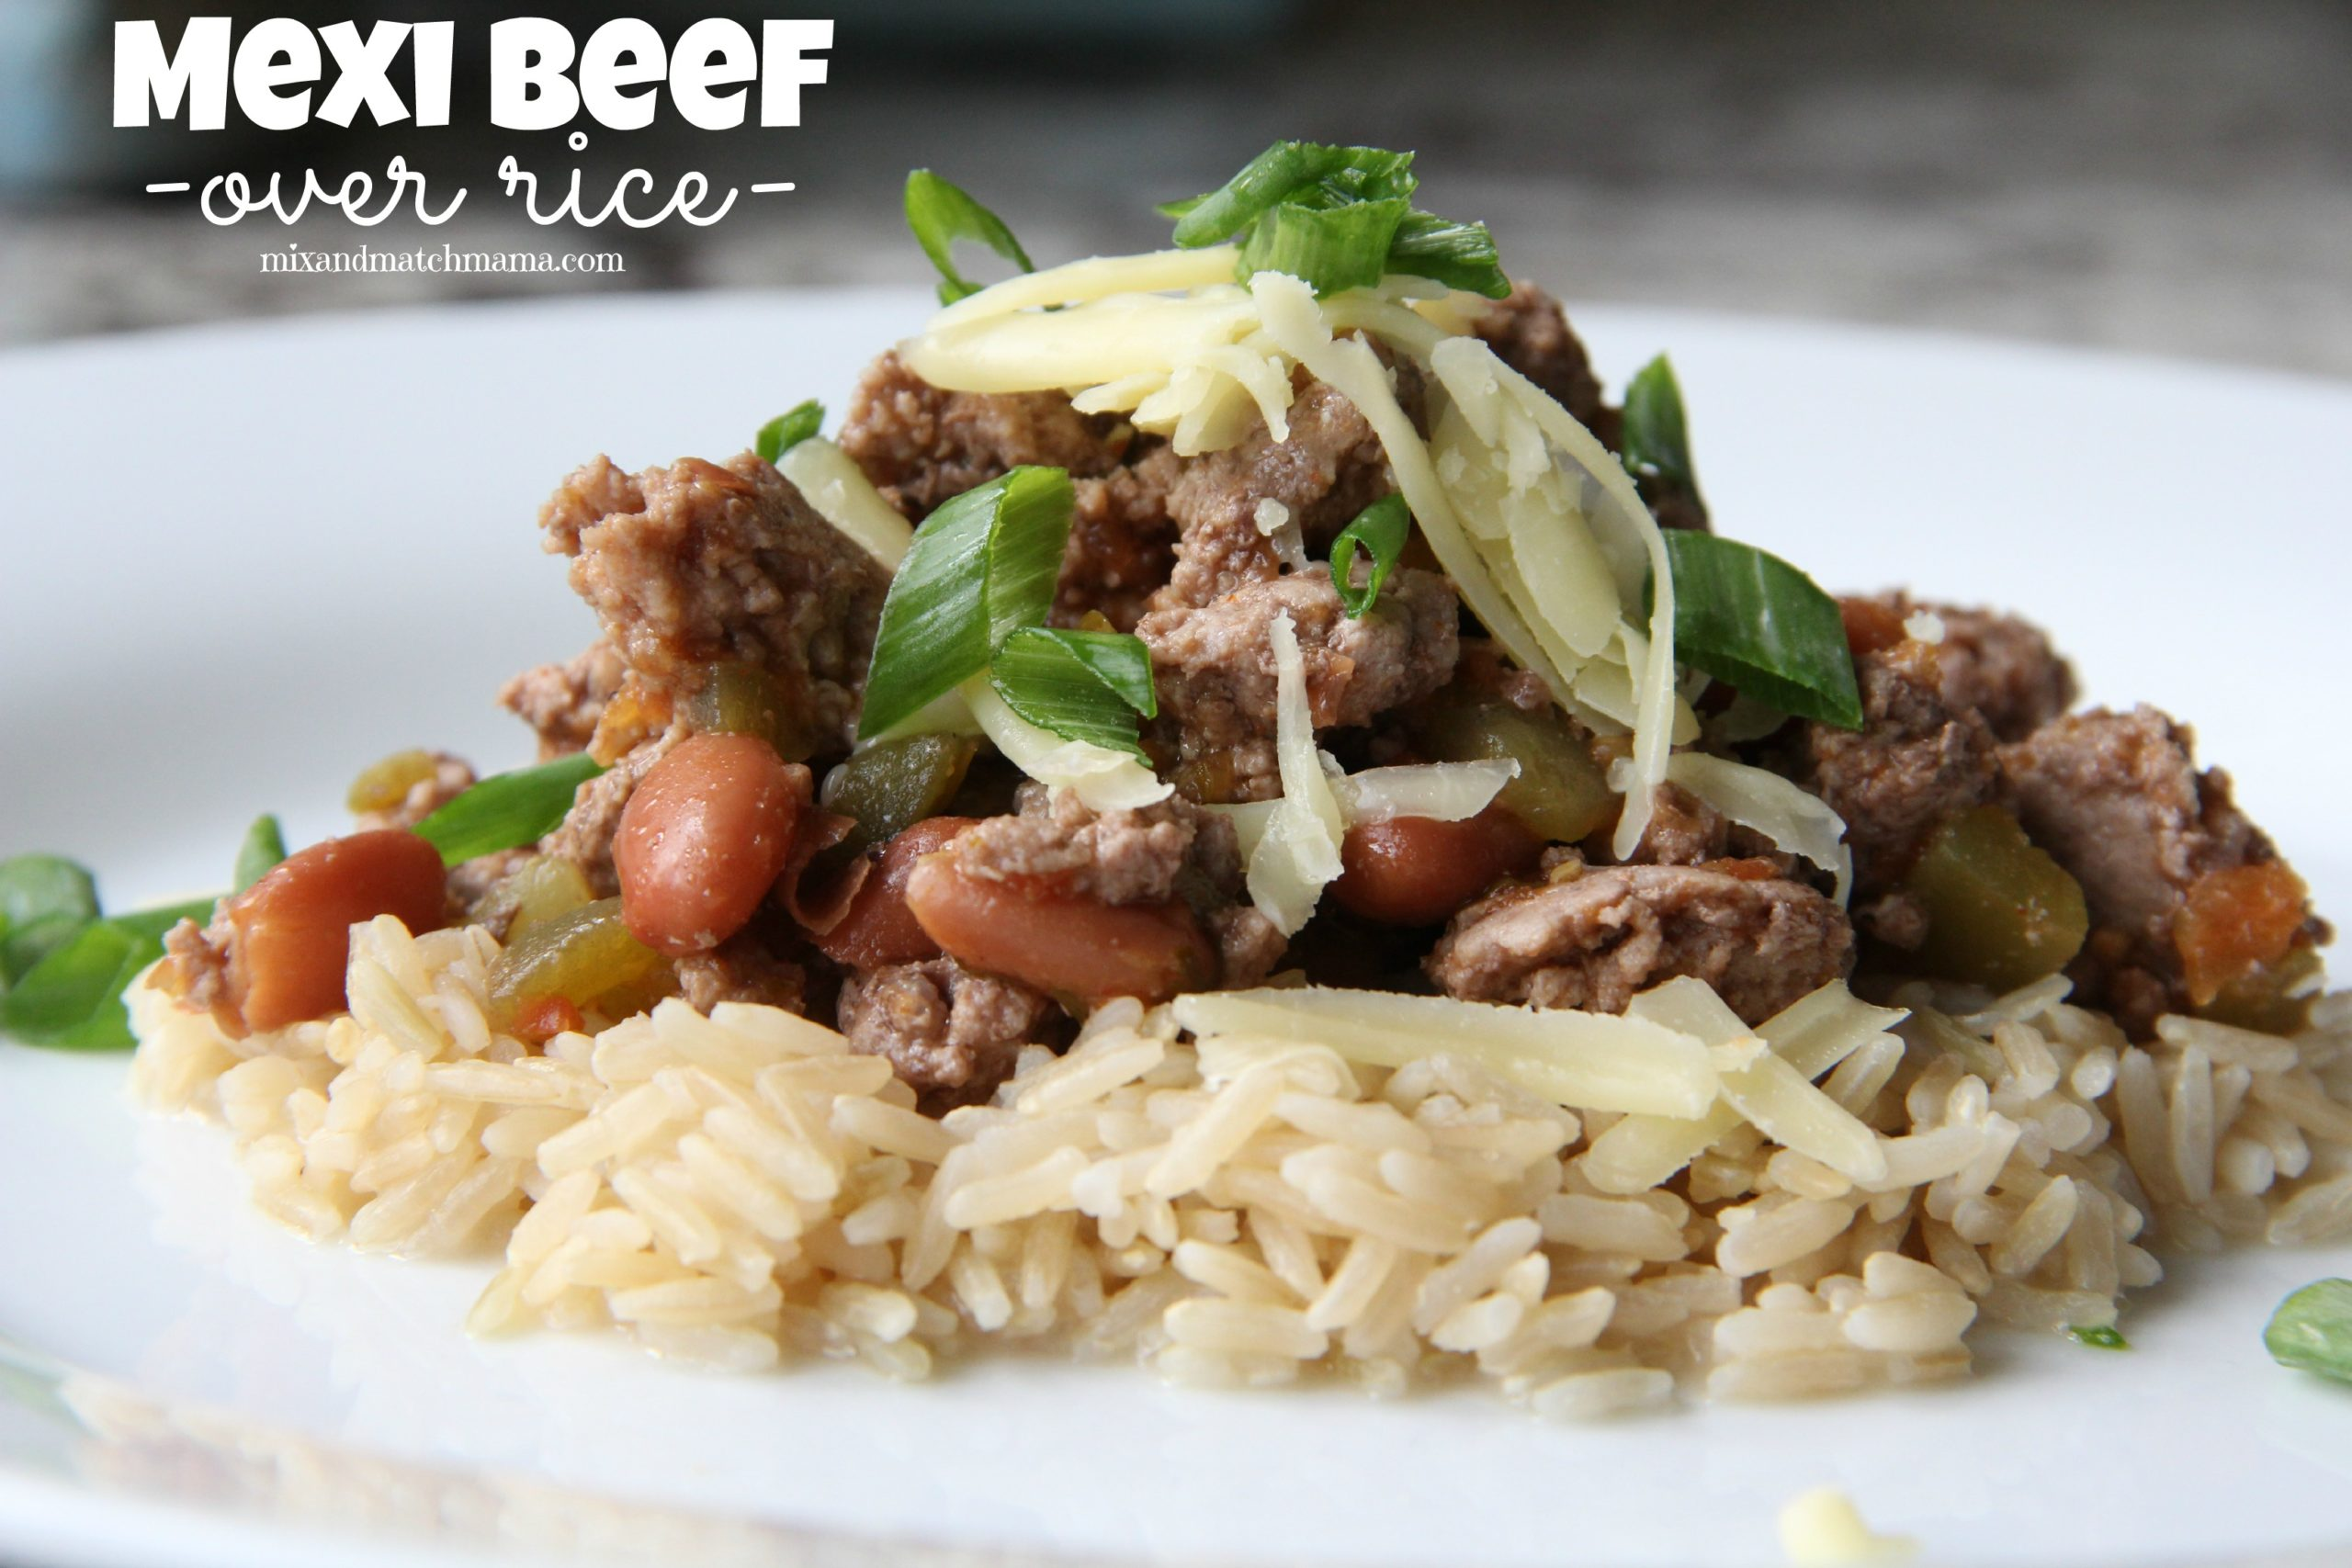 Mexi Beef over Rice